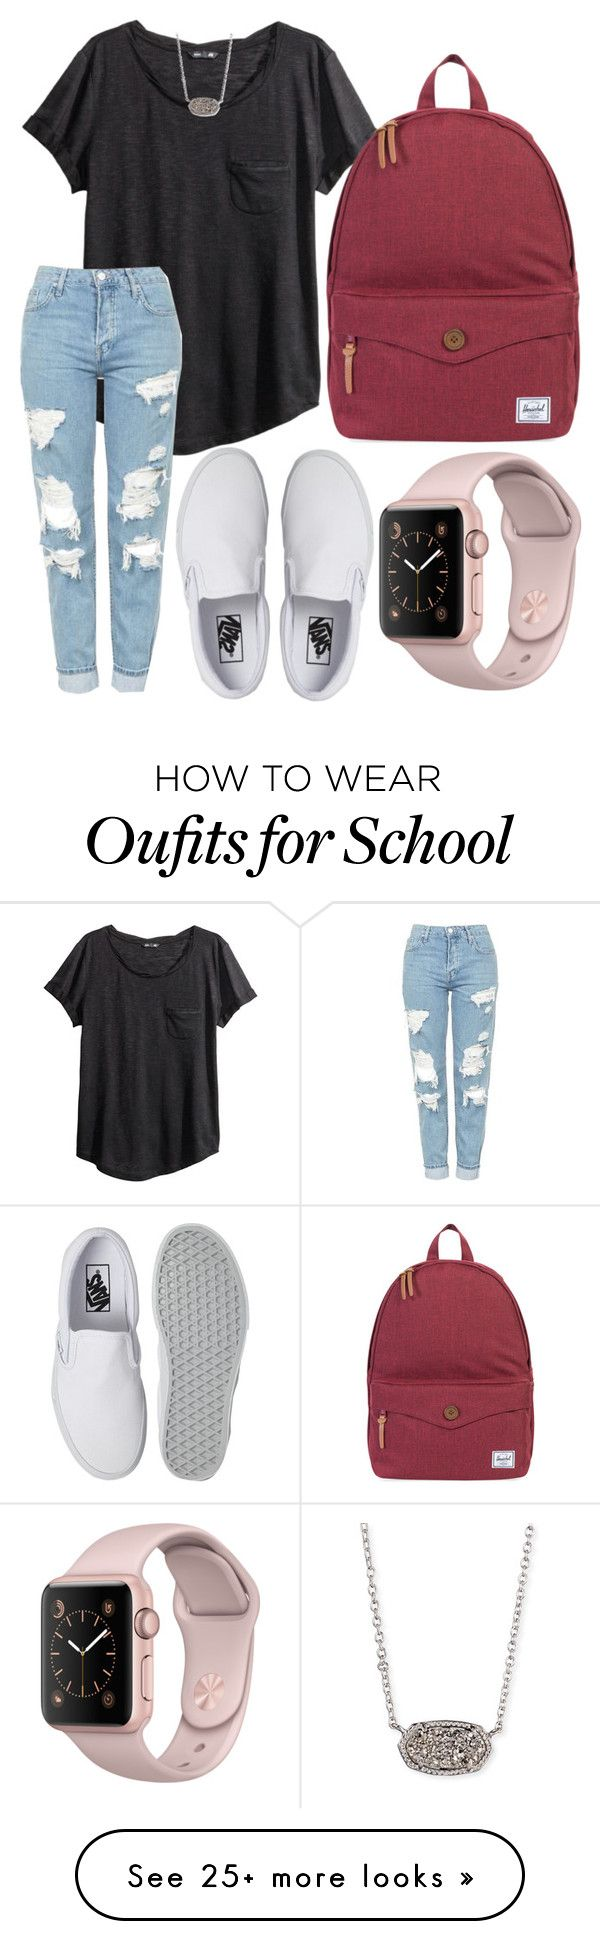 """""""School outfit"""" by jadenriley21 on Polyvore featuring H&M, Topshop, Vans, Kendra Scott and Herschel Supply Co."""